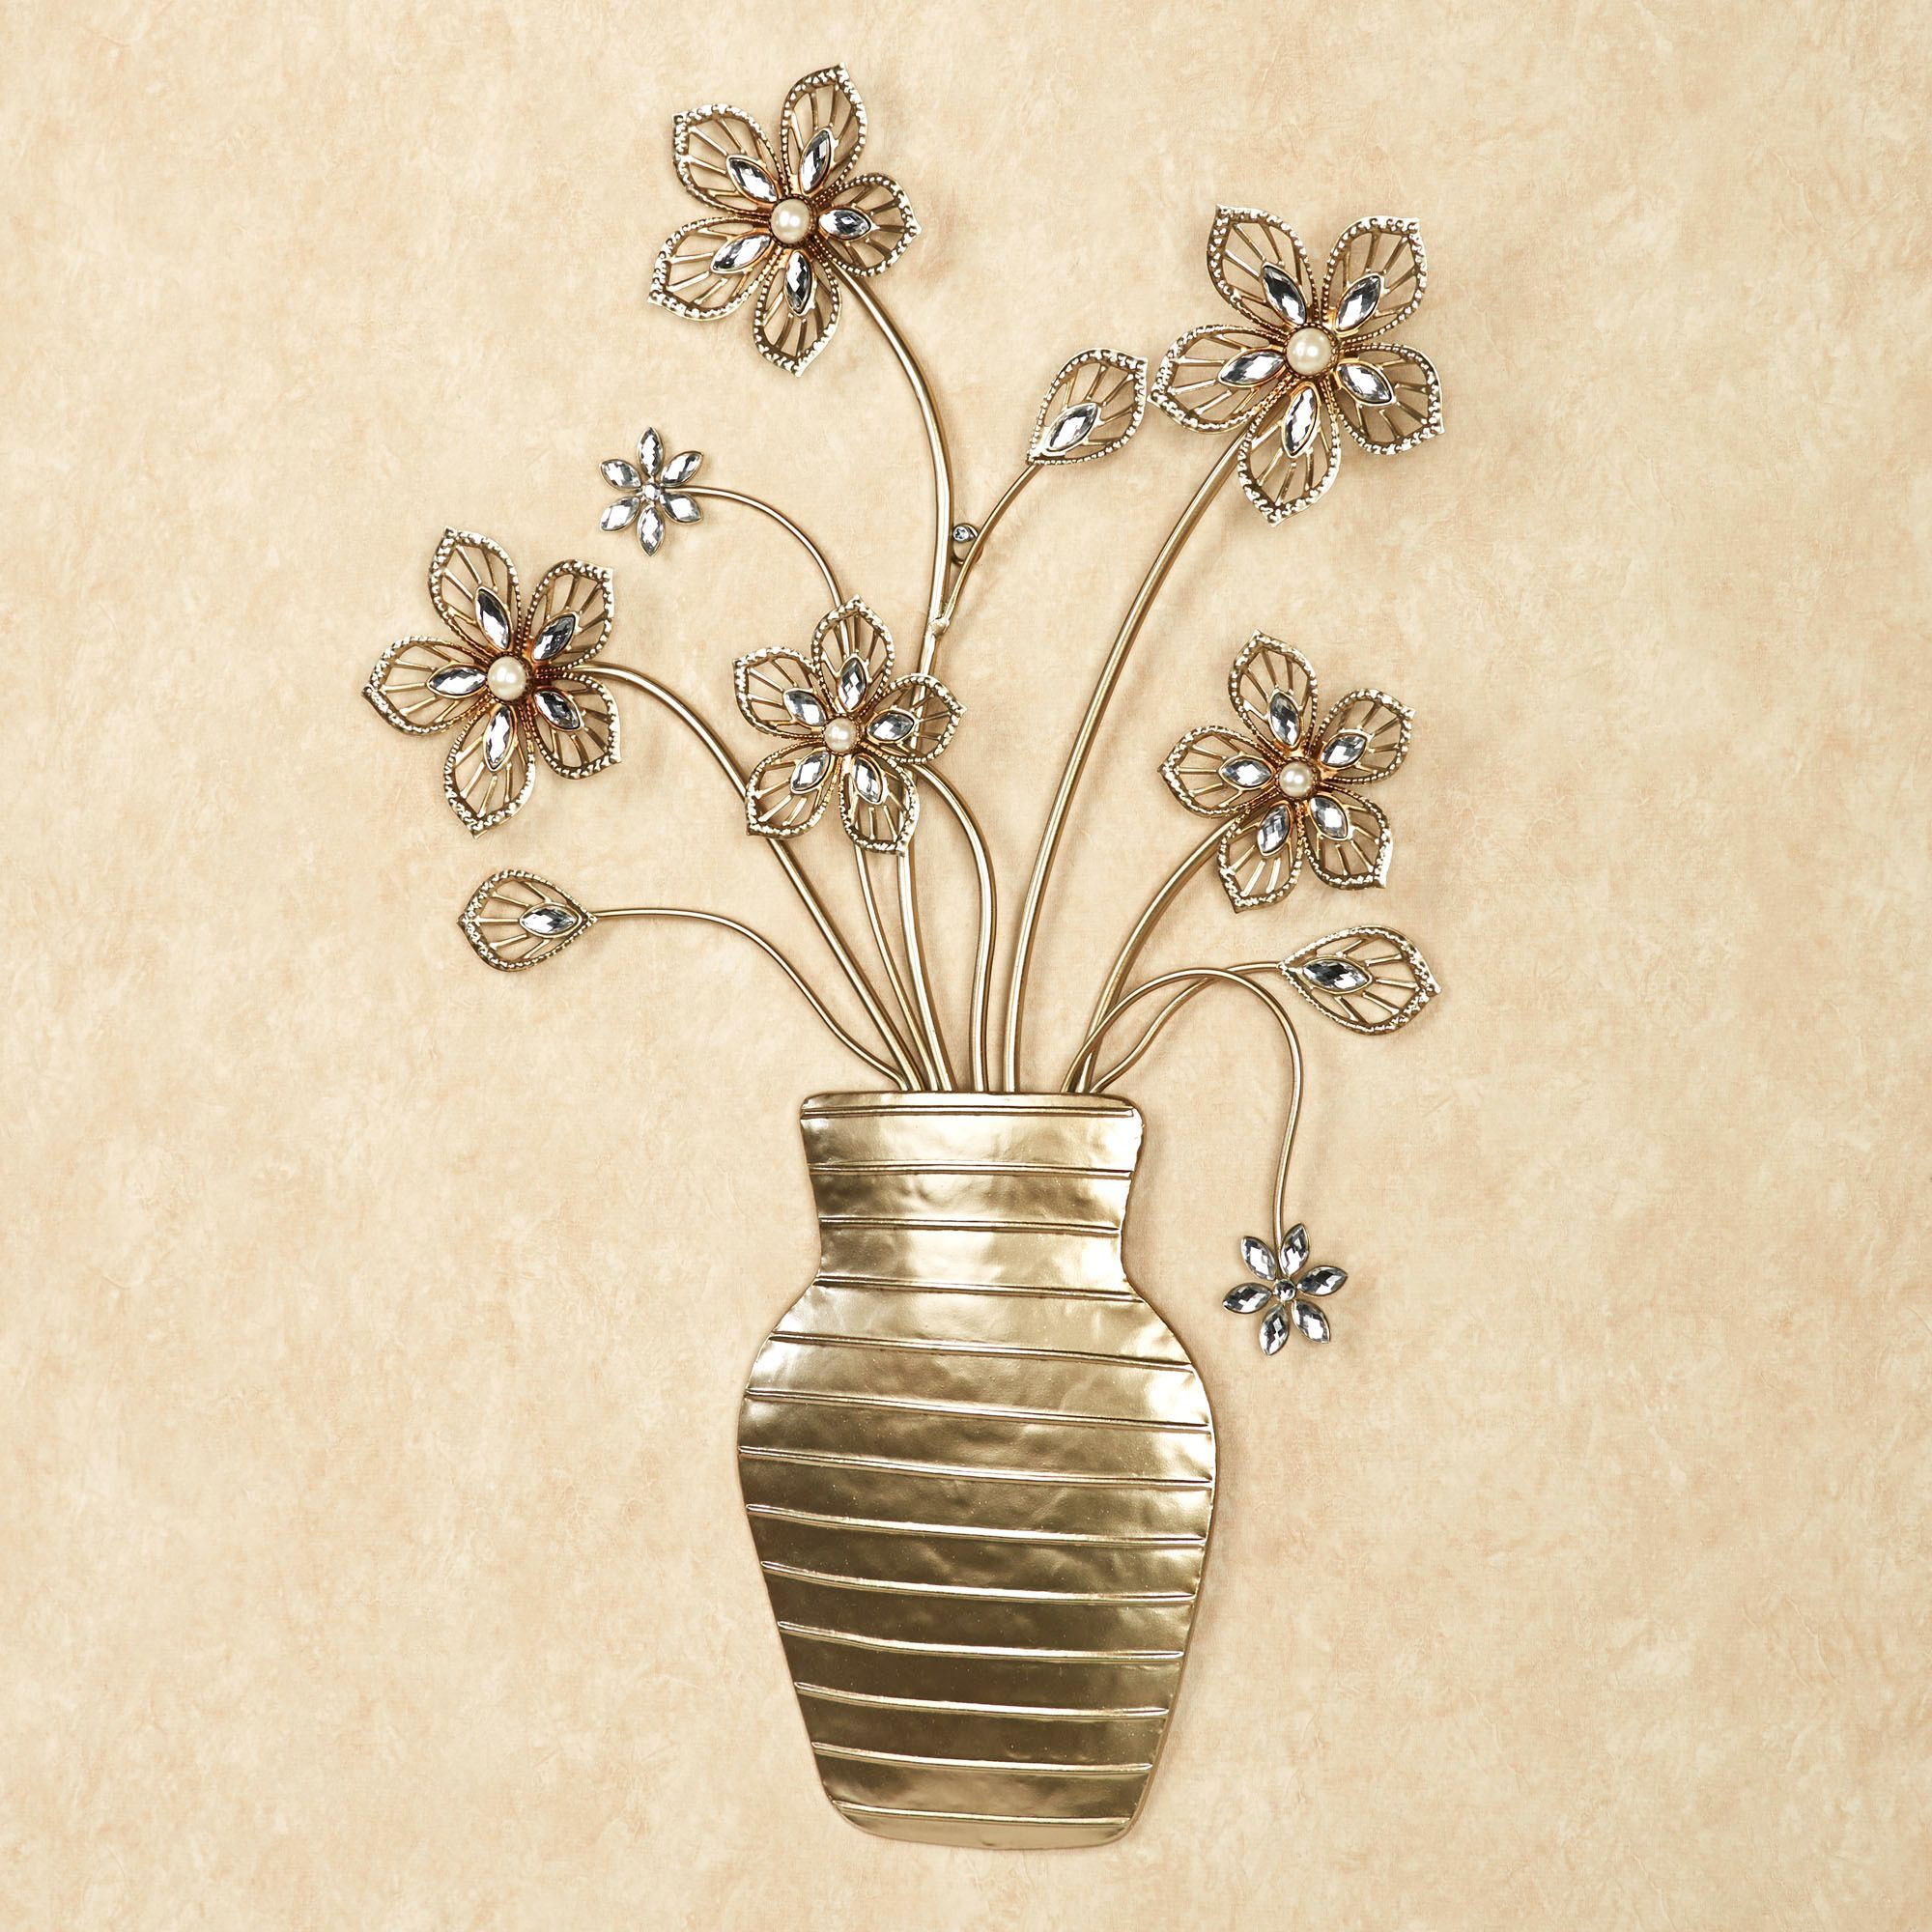 cone shaped vase of wall vases for flowers wall ideas pertaining to wall vase sconce pixball com